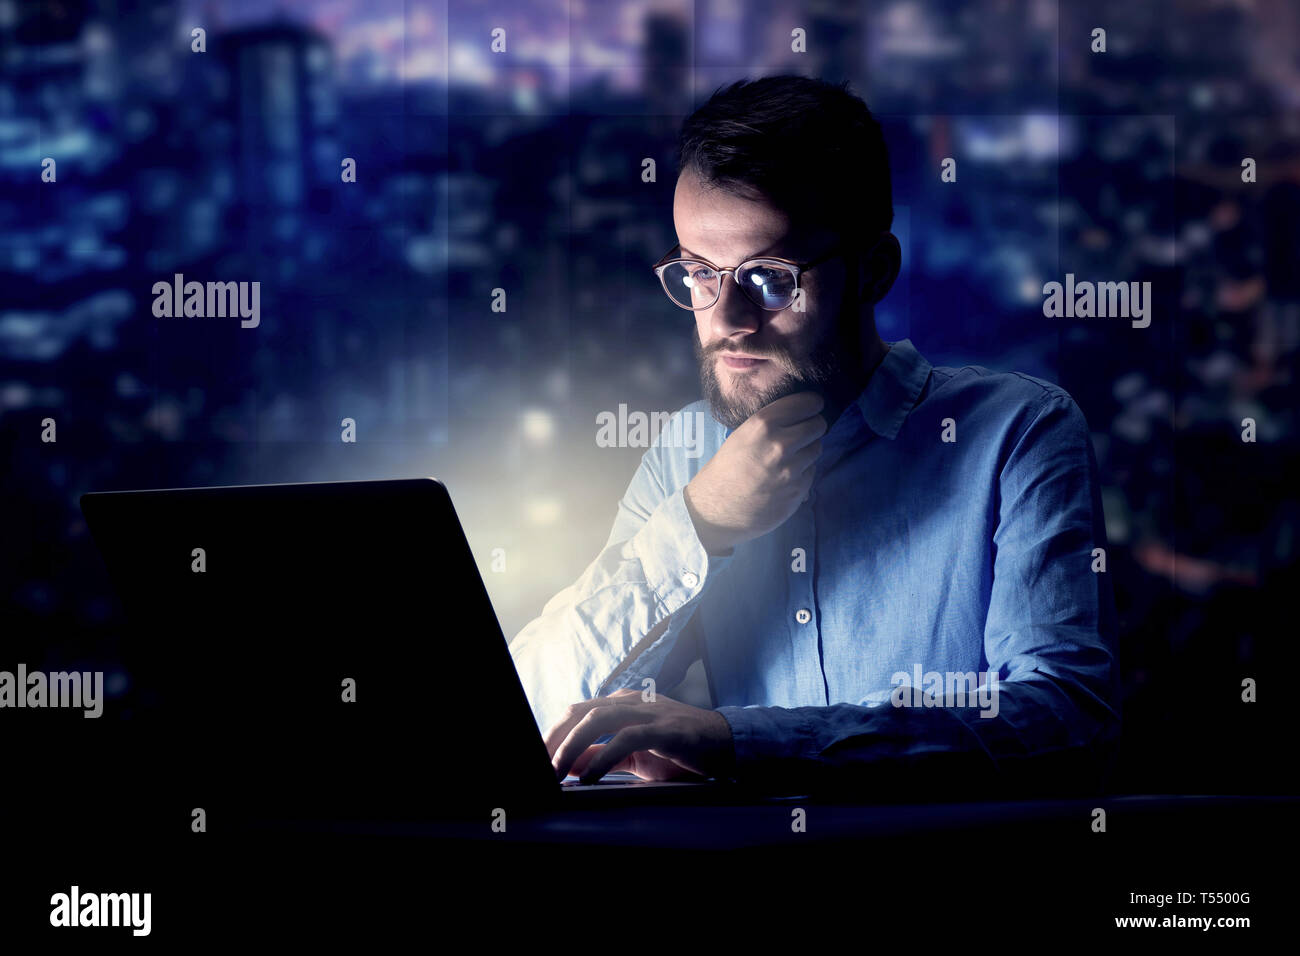 Young handsome businessman working late at night in the office with blue lights in the background - Stock Image